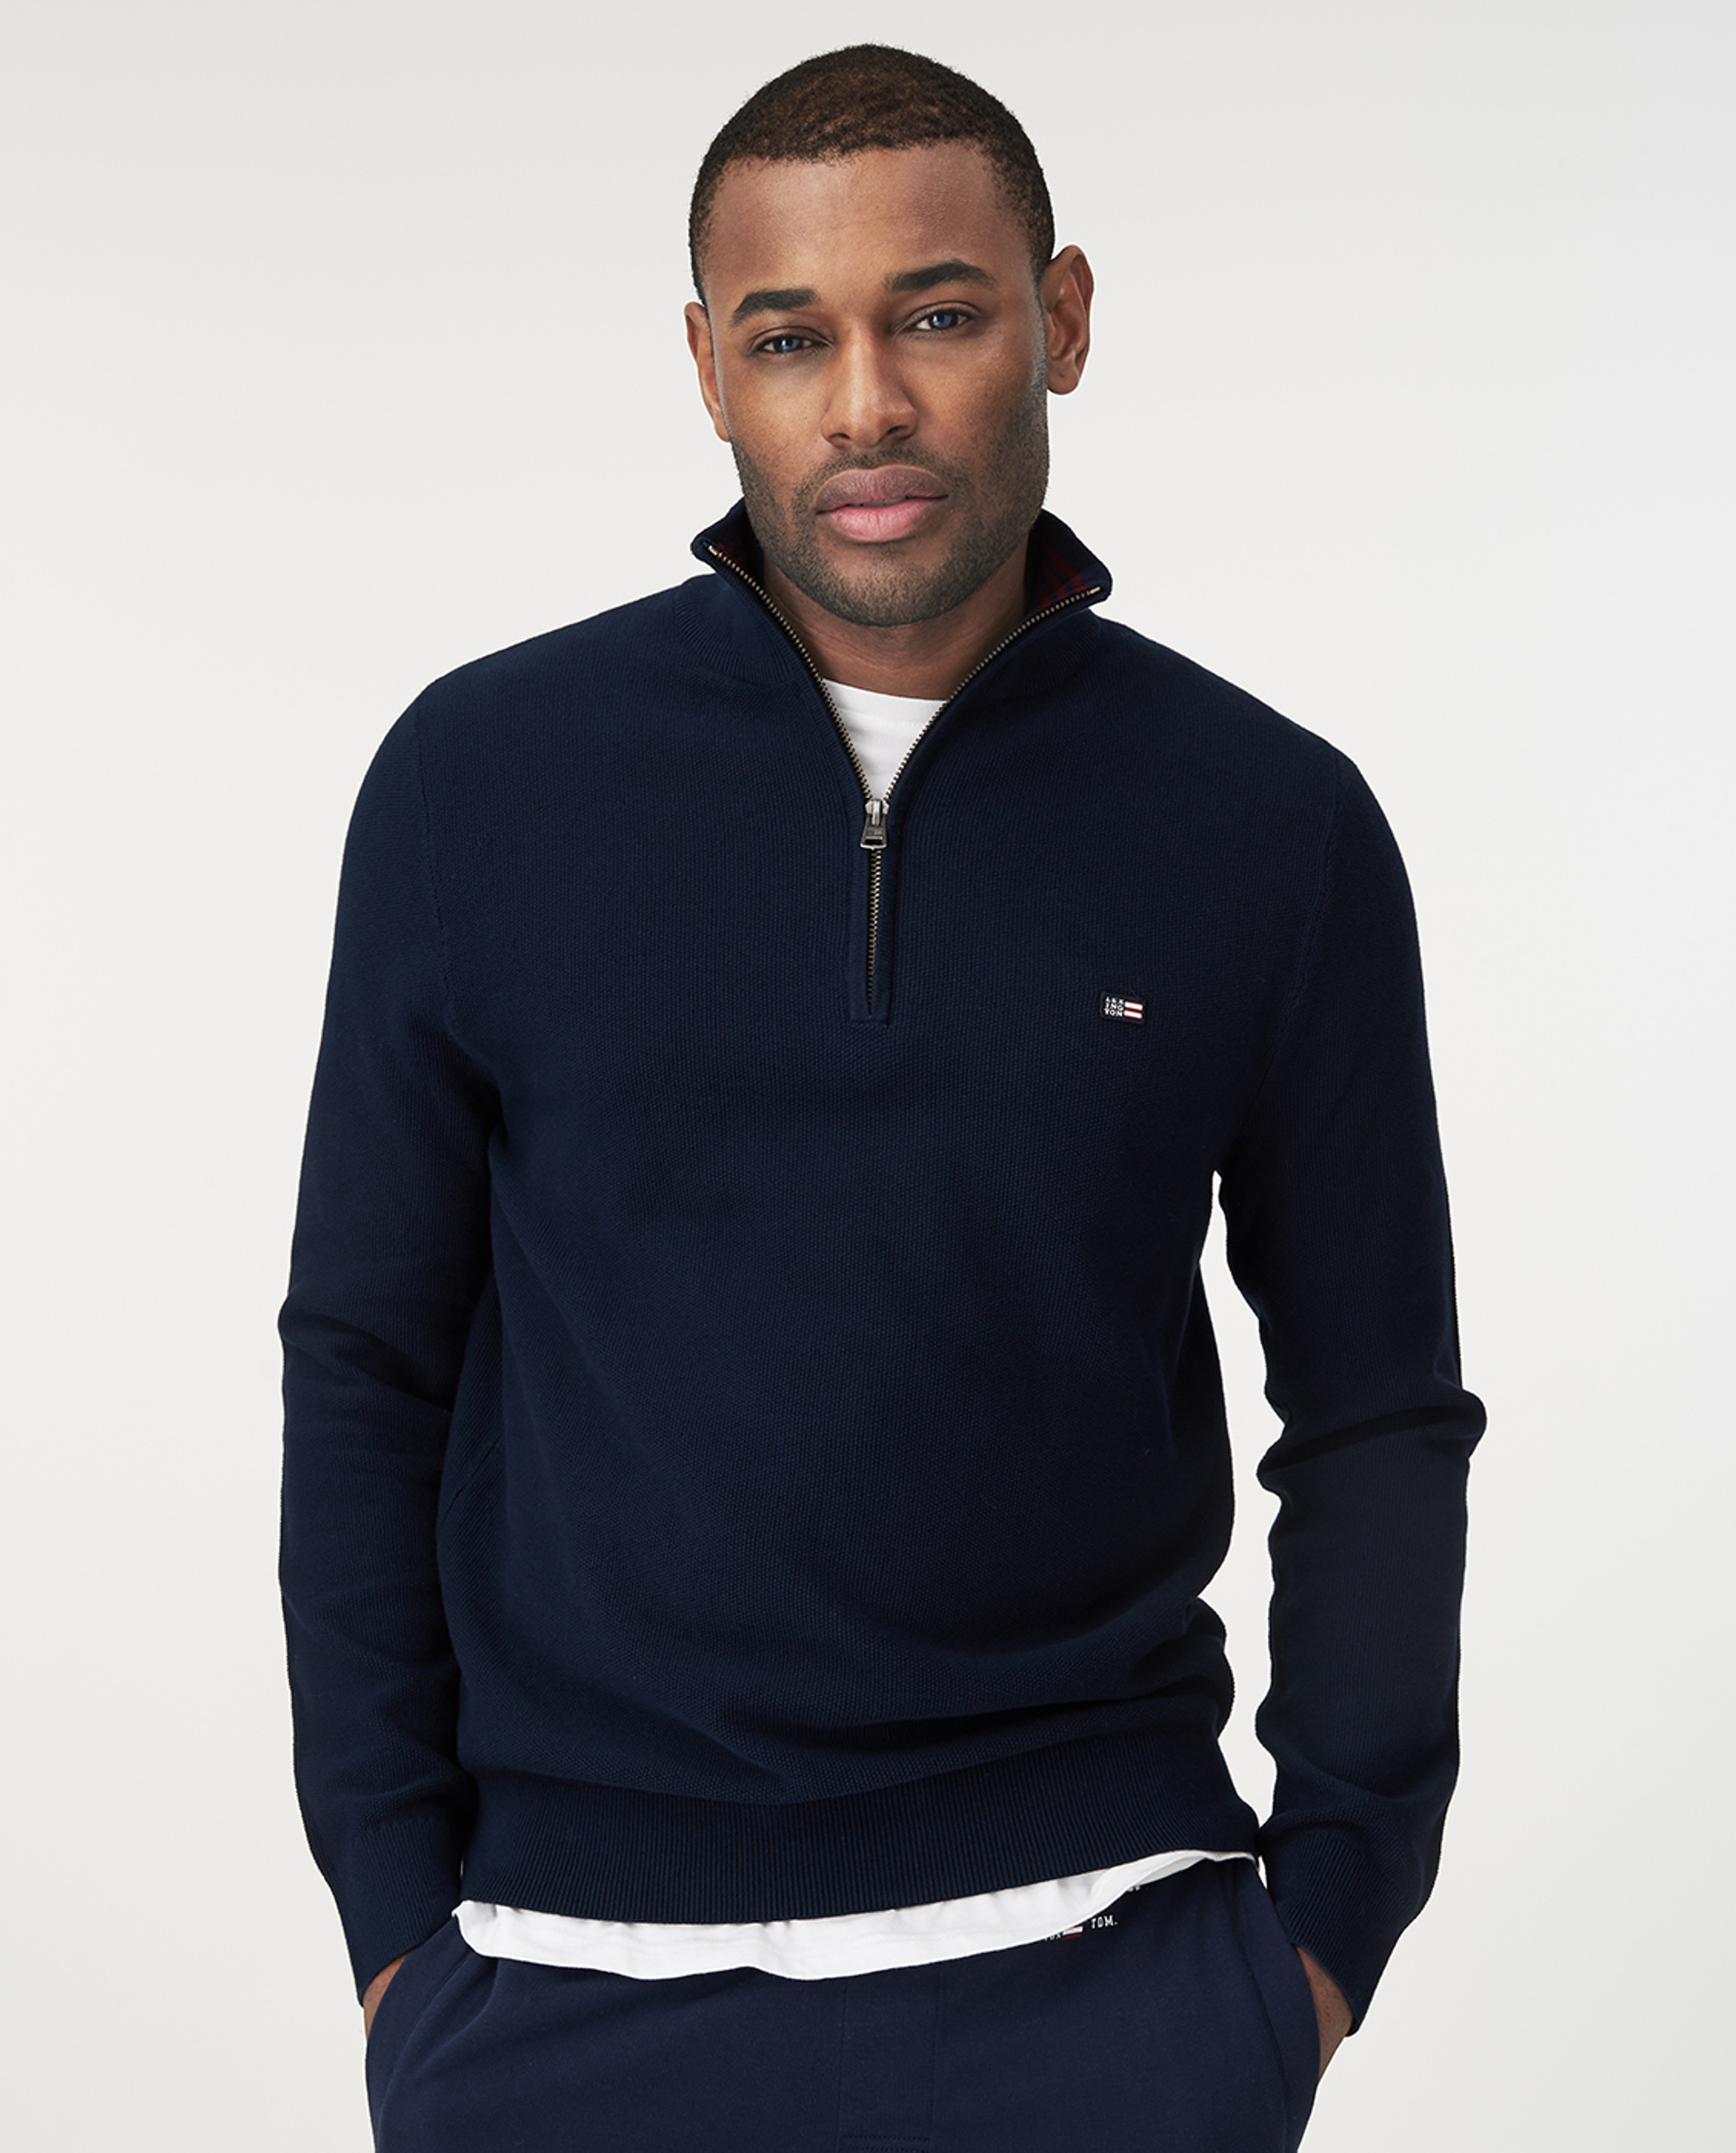 Clay Half Zip Combed Cotton Sweater, Dark Blue